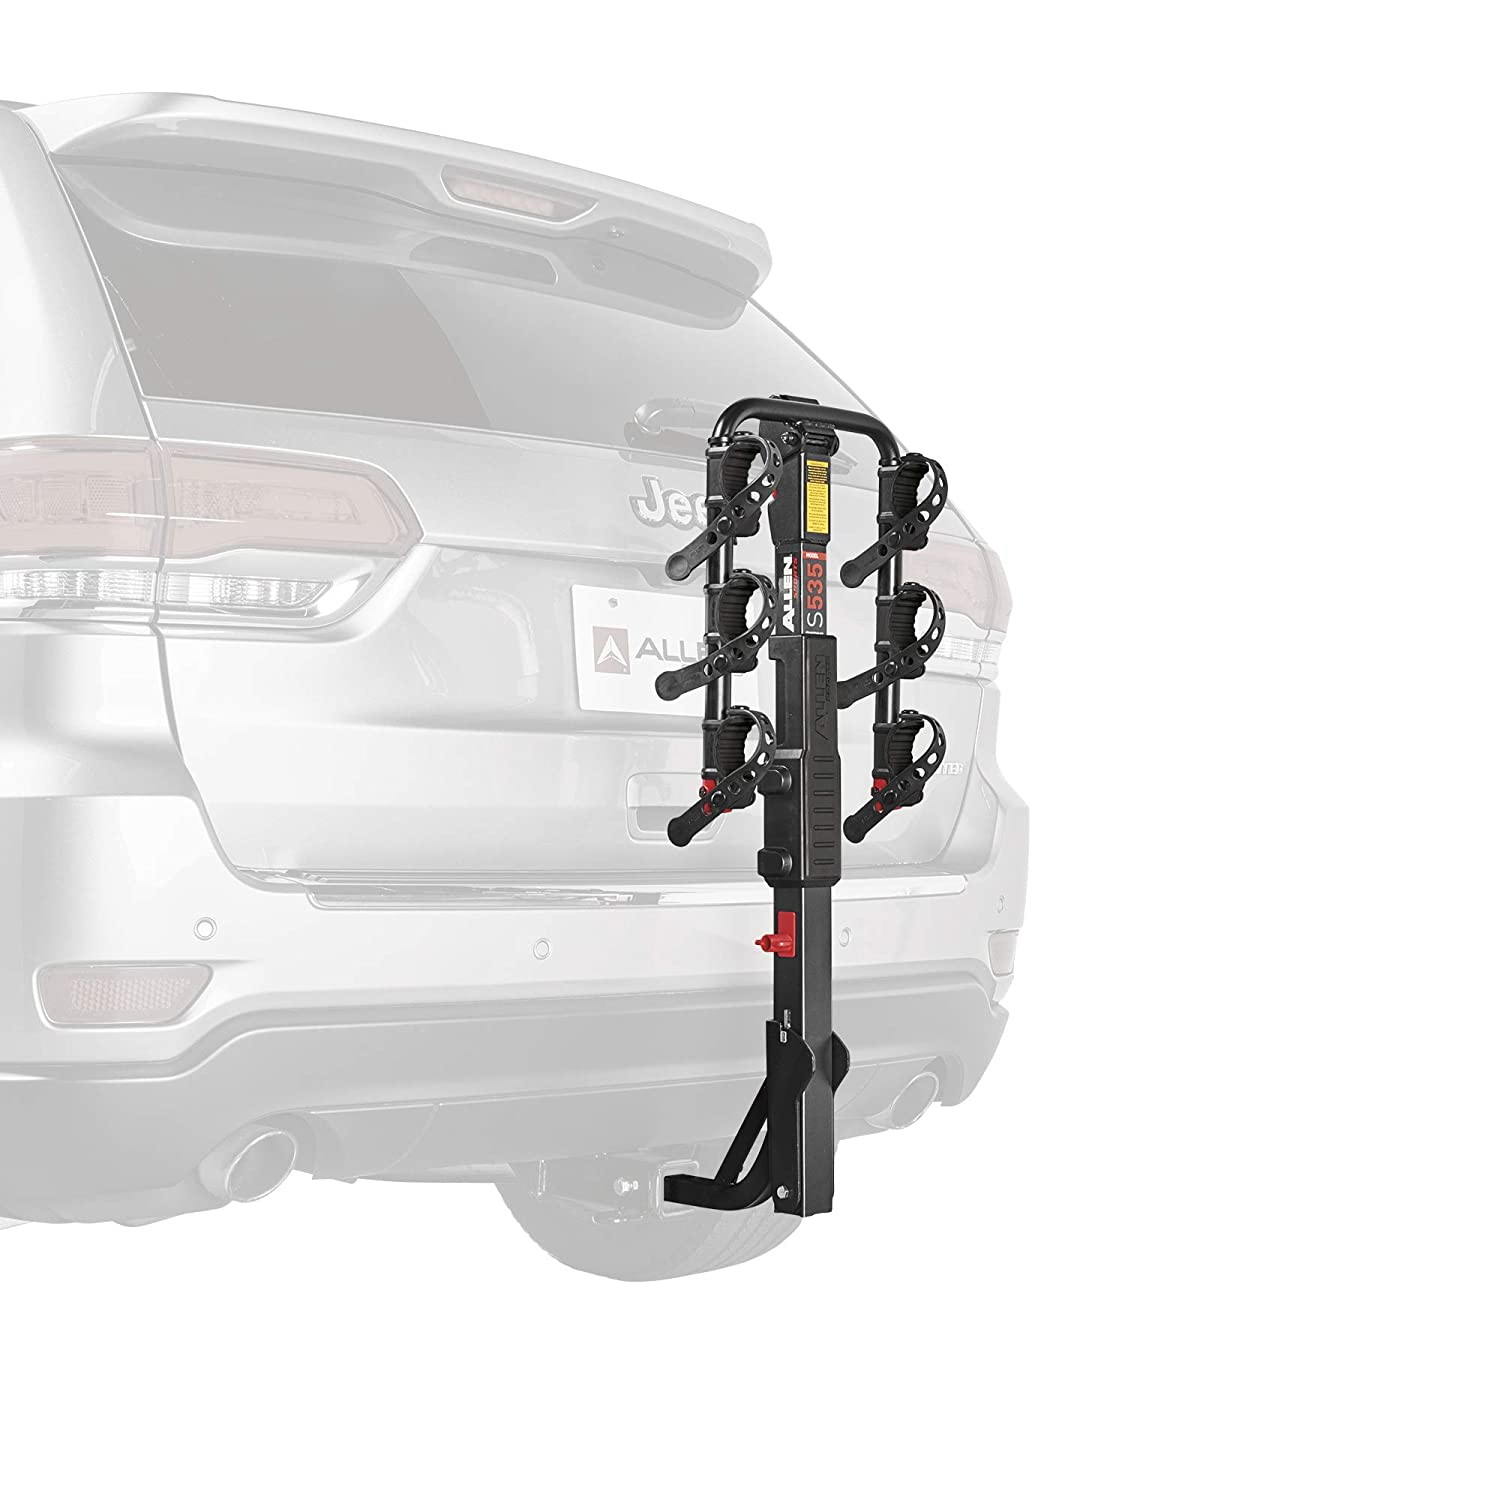 Hitch Allen Sports 3-Bike Hitch Racks for 1 1//4 in and 2 in